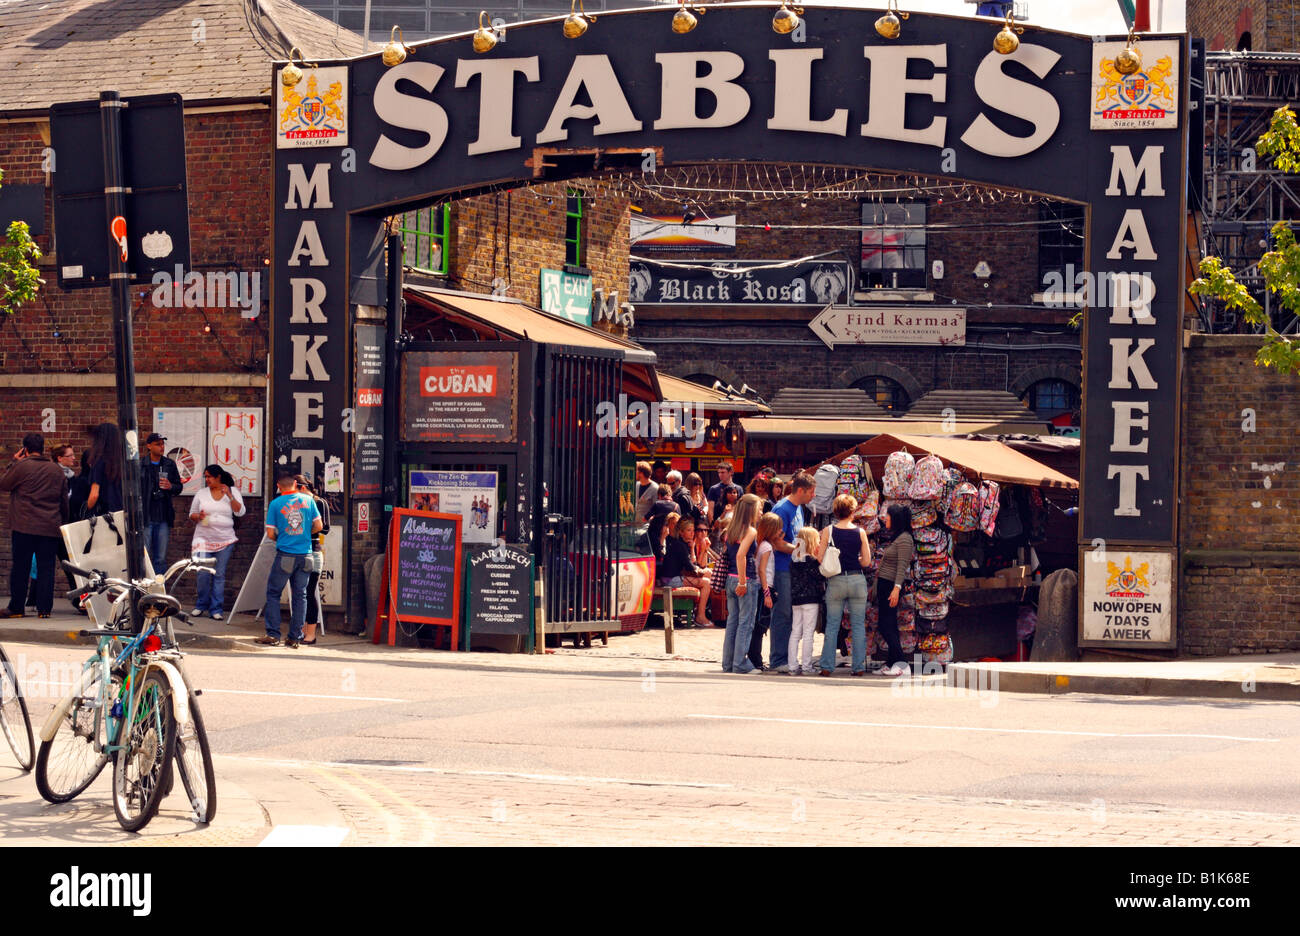 Entrance to Stables Market, Camden in London - Stock Image